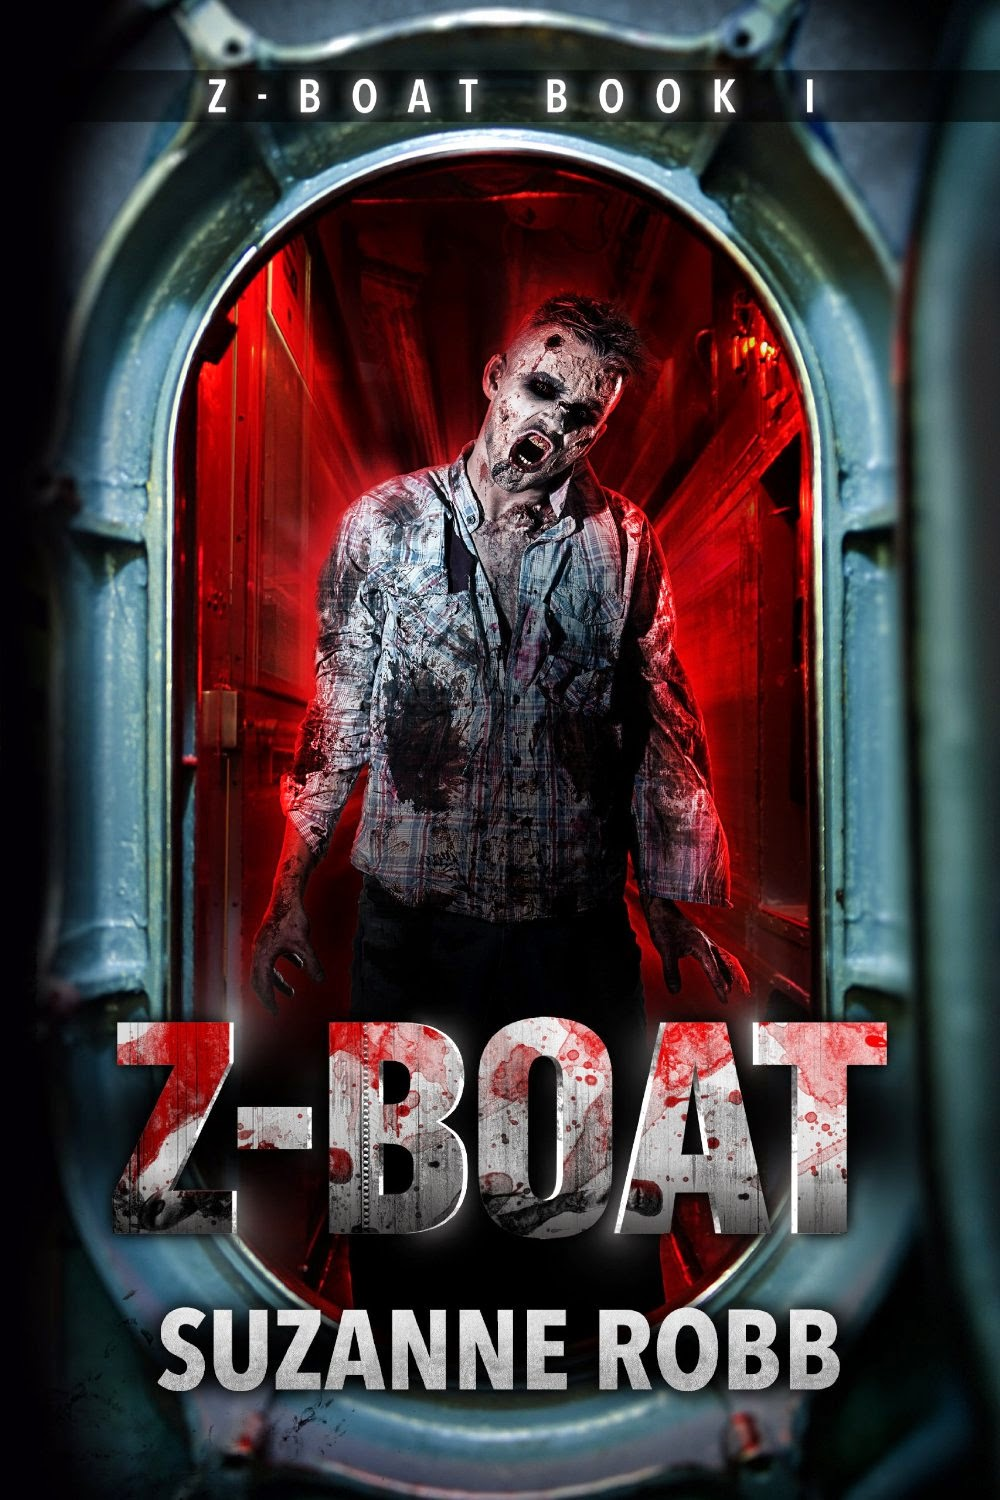 Z-Boat by Suzanne Robb